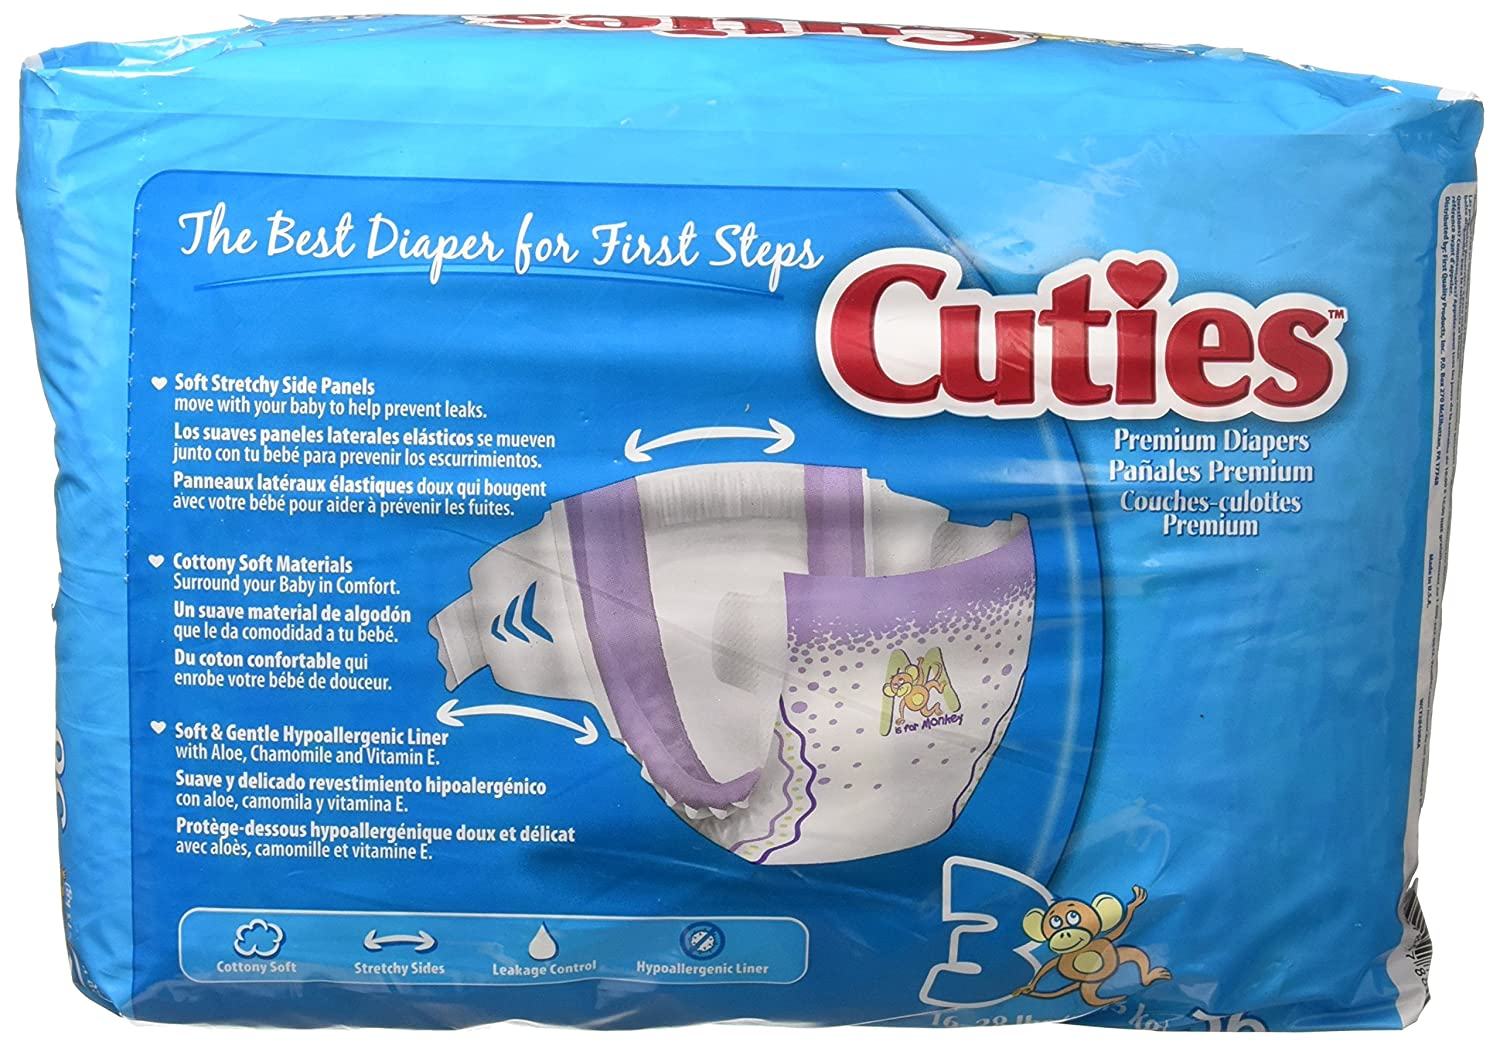 Amazon.com : Cuties Premium Baby Diapers, Size 3, 36 ct Bag : Incontinence Protective Underwear : Baby